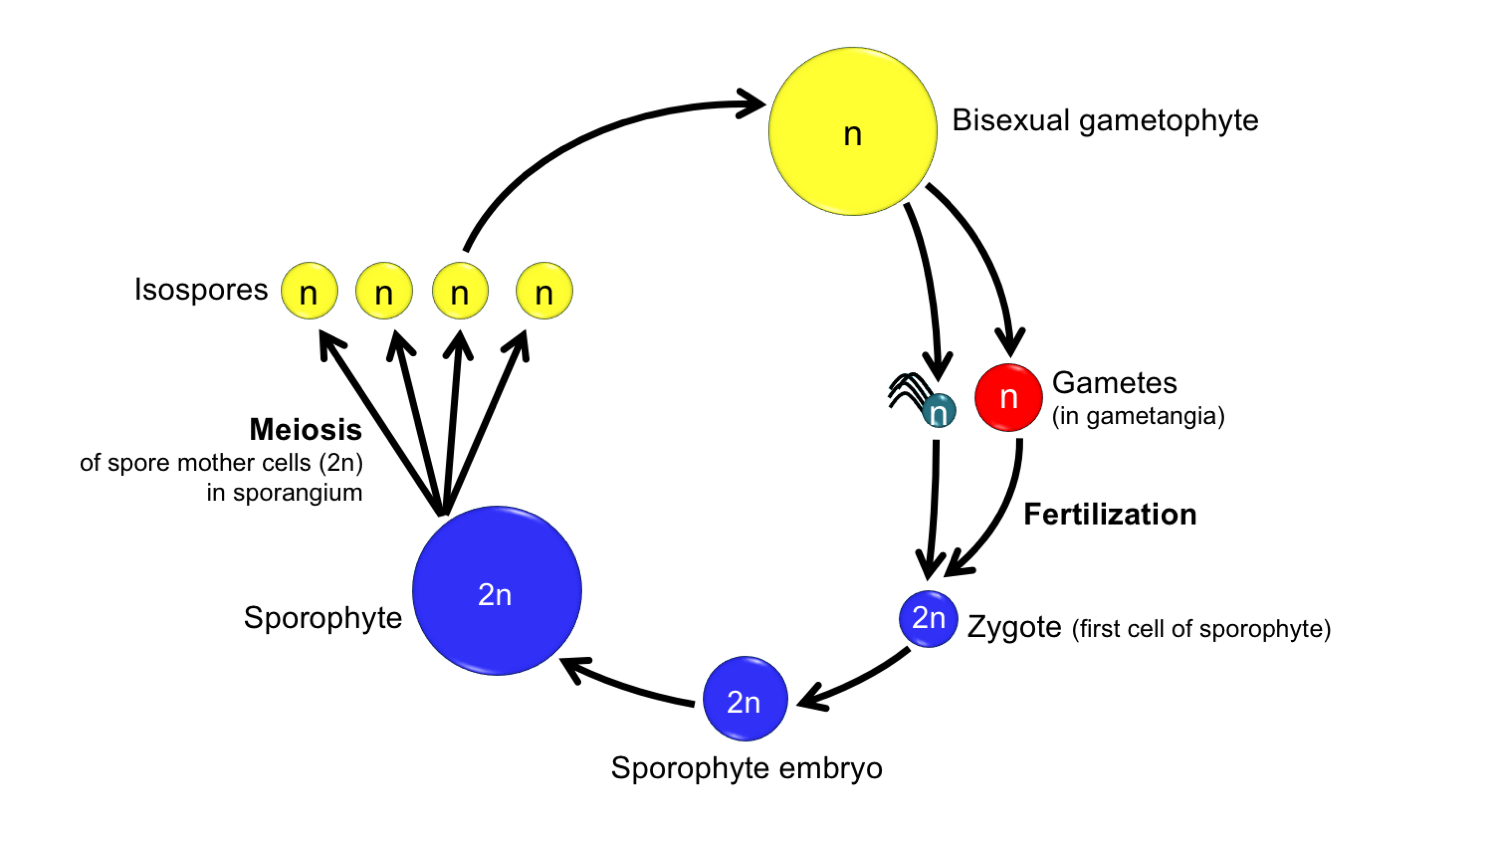 Diagram of the life cycle of a homosporous plant with bisexual gametophytes.